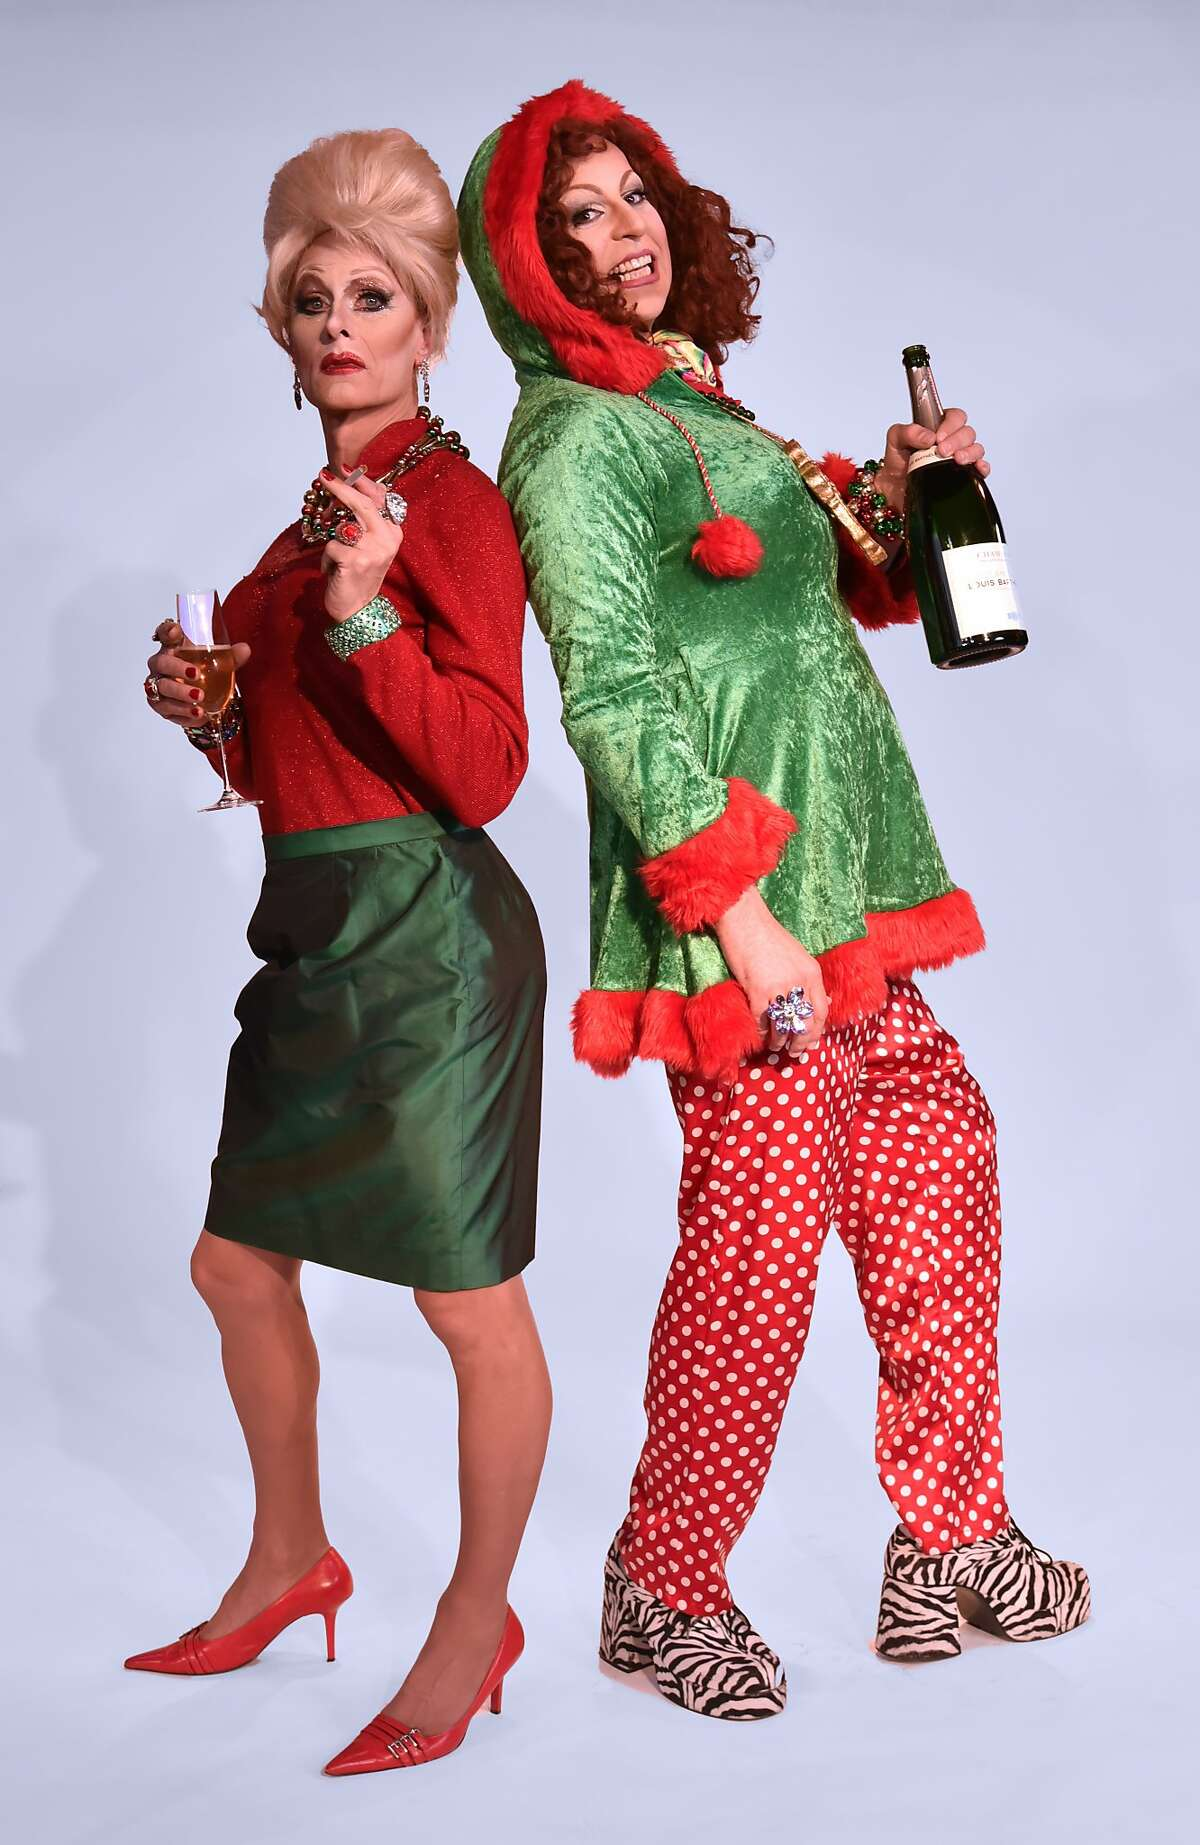 """Christian Heppinstall as Patsy and Terry McLaughlin as Edina in Oasis Nightclub and Cabaret's """"Absolutely Fabulous: The Holiday Episodes."""""""